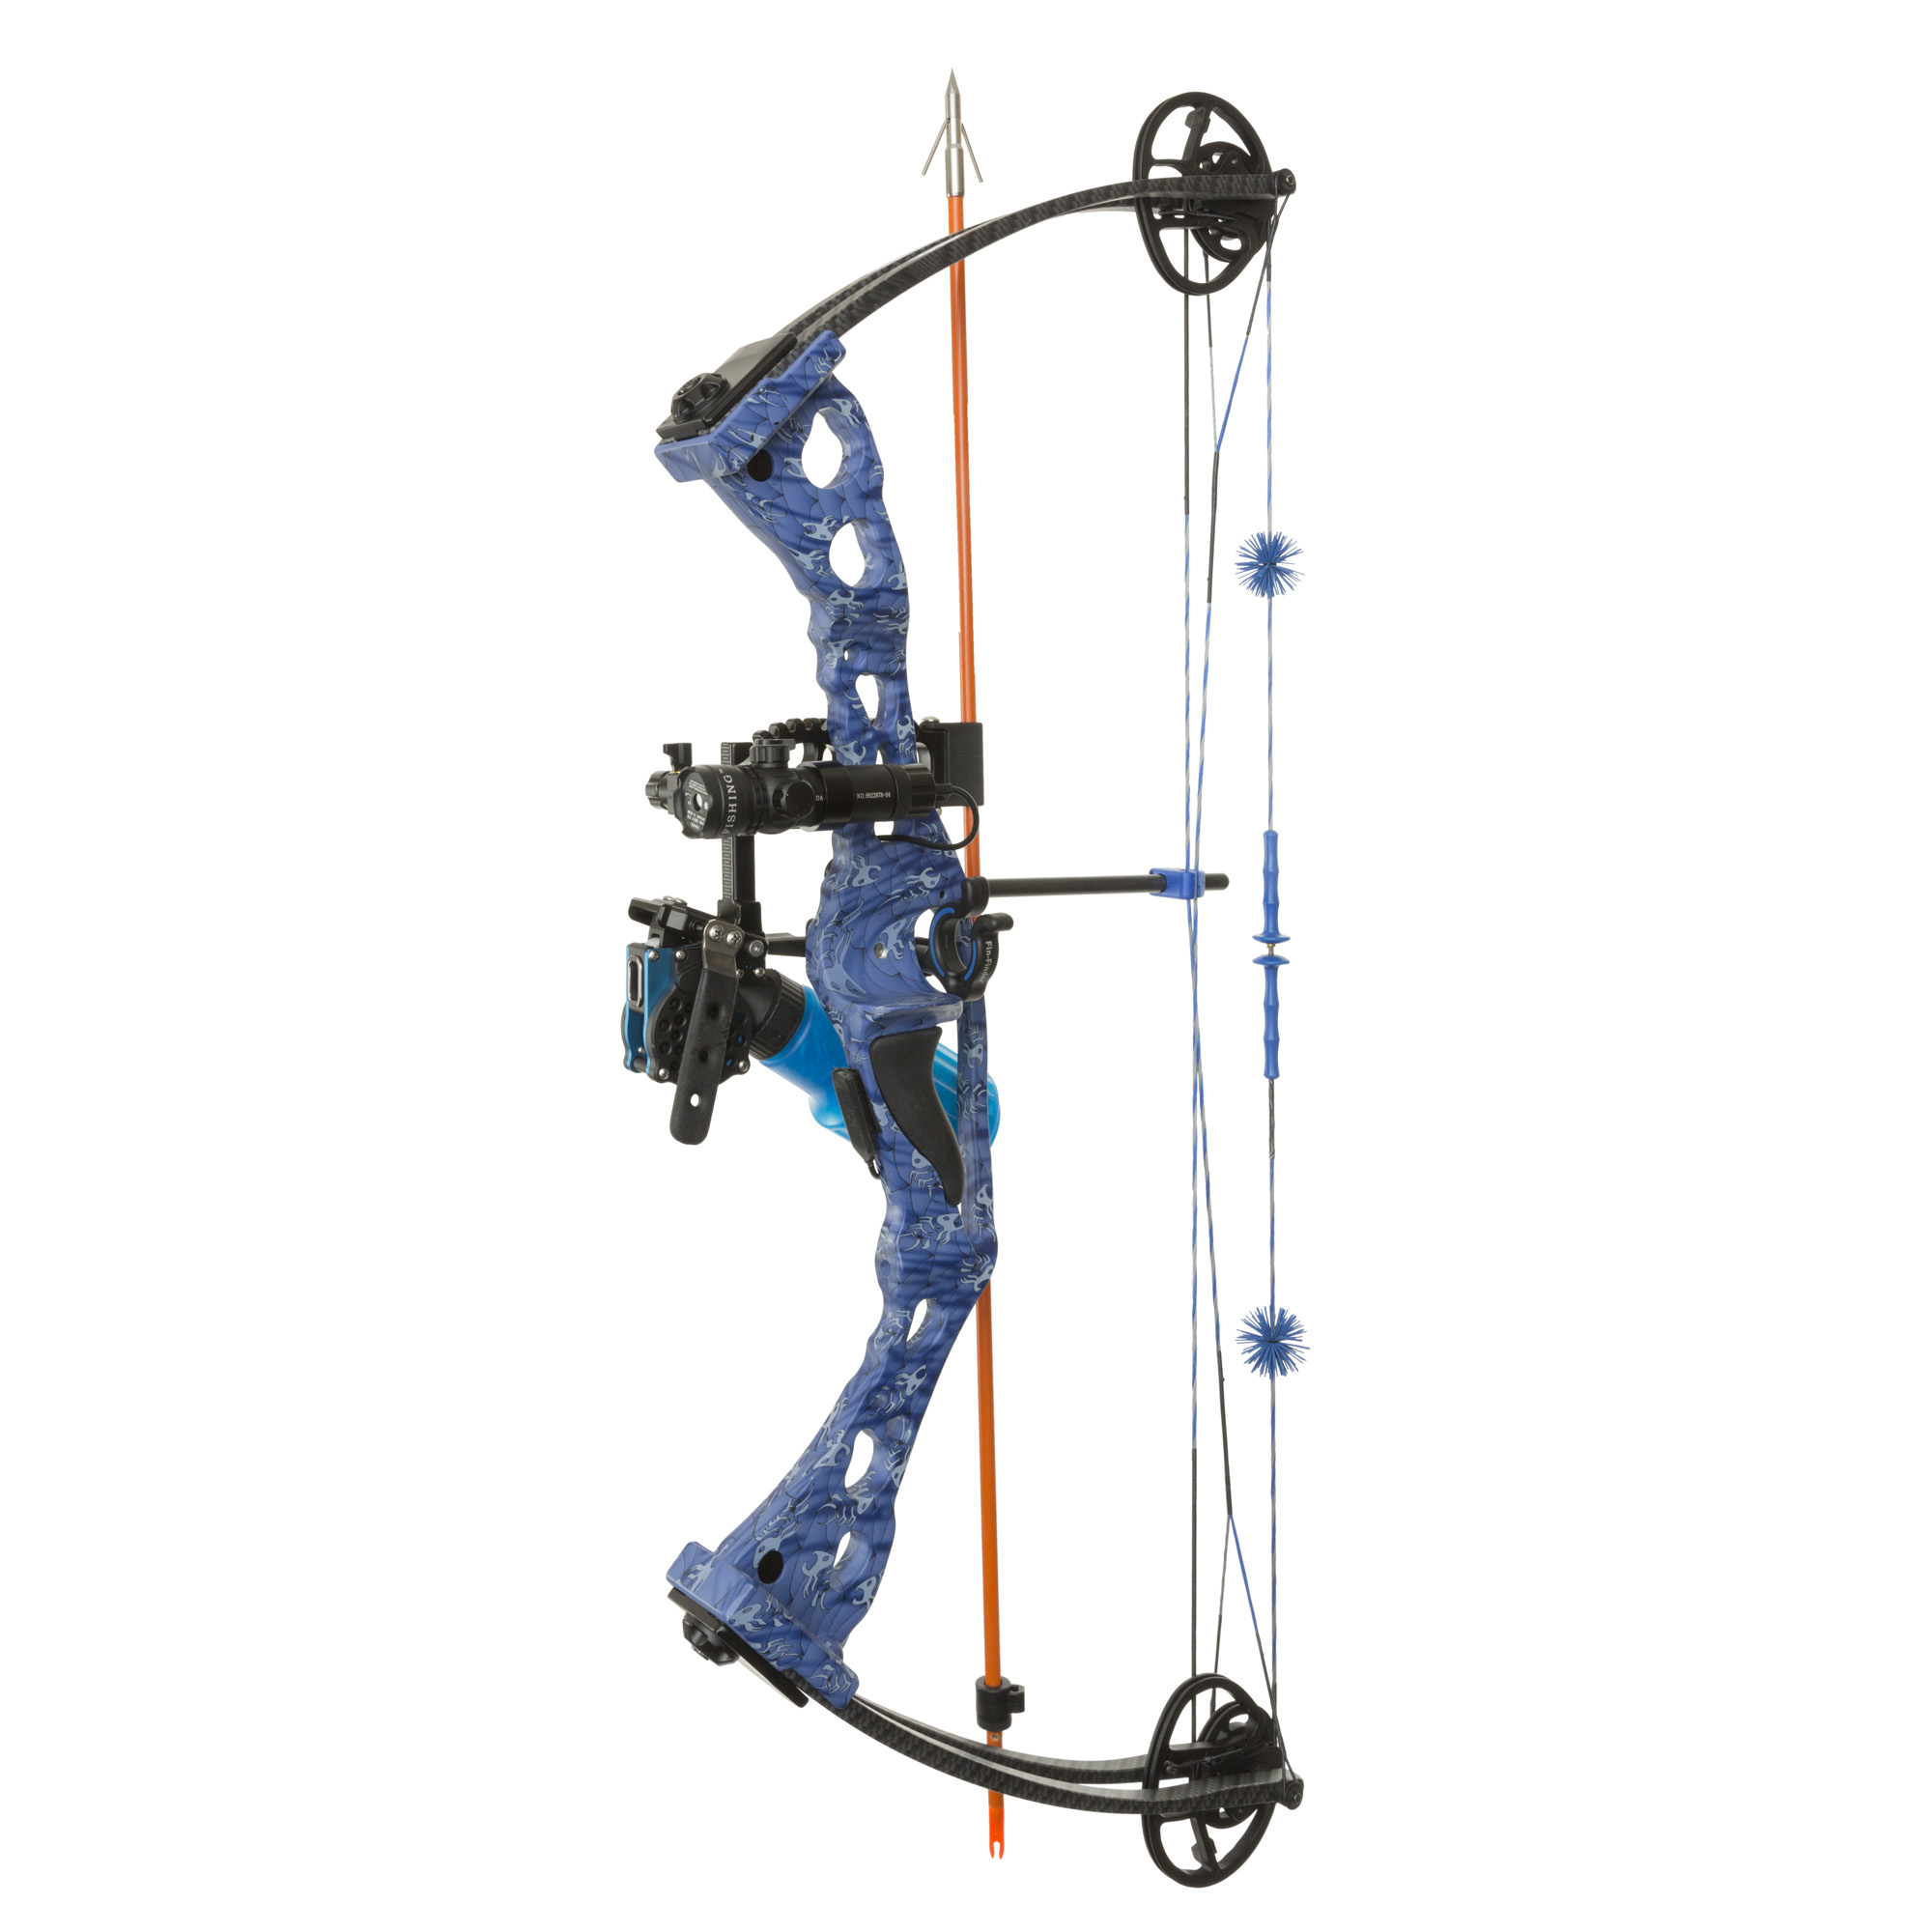 Poseidon bowfishing compound bow for Bow fishing bows